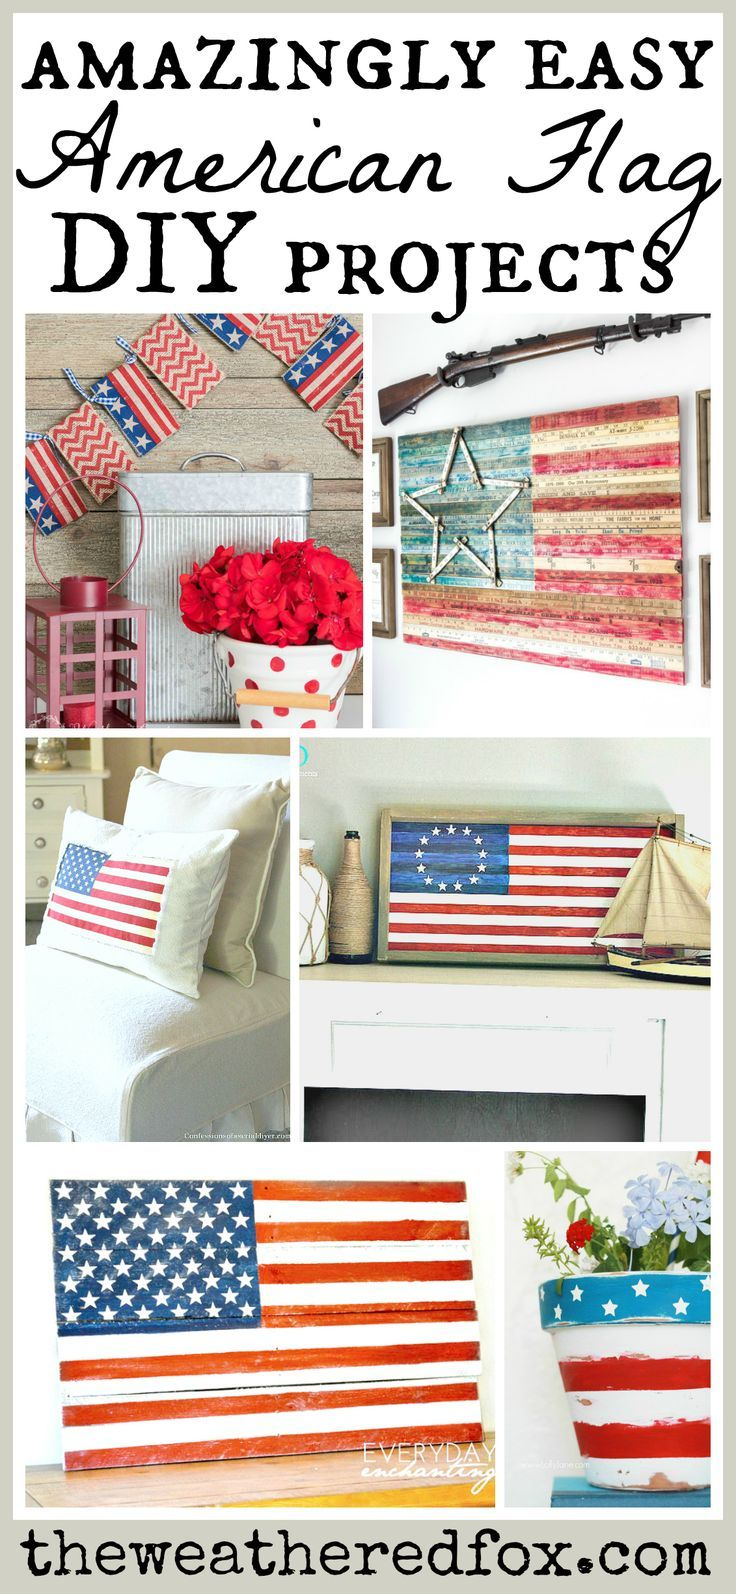 American Flag Decor Ideas. DIY patriotic projects for summer decor. Show your american pride with these simple decor ideas!